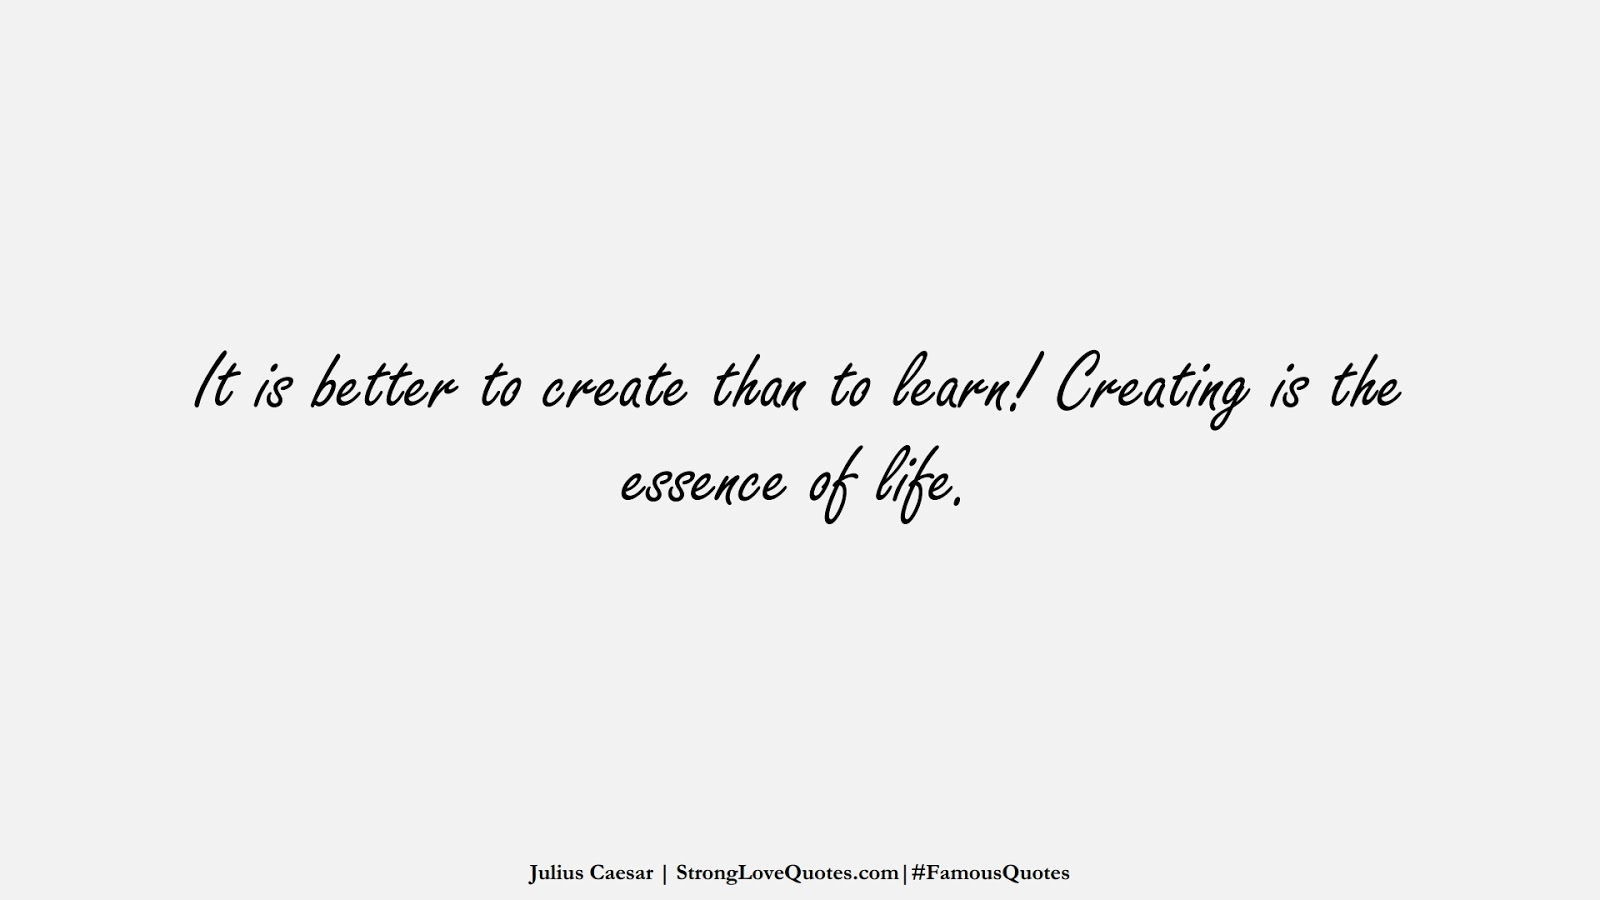 It is better to create than to learn! Creating is the essence of life. (Julius Caesar);  #FamousQuotes